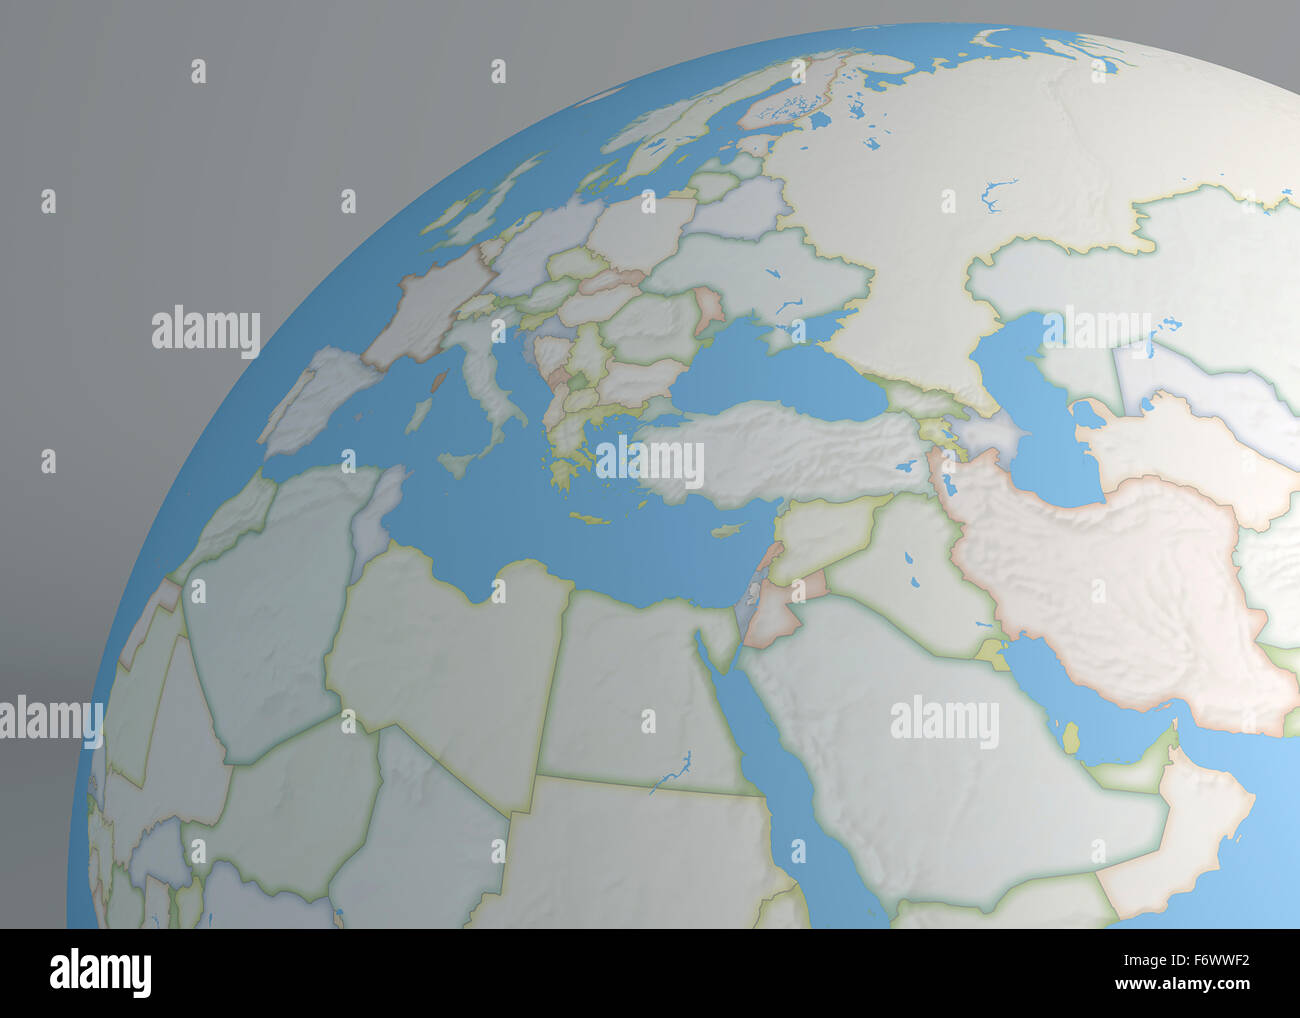 World Map Of Middle East, Europe And North Africa